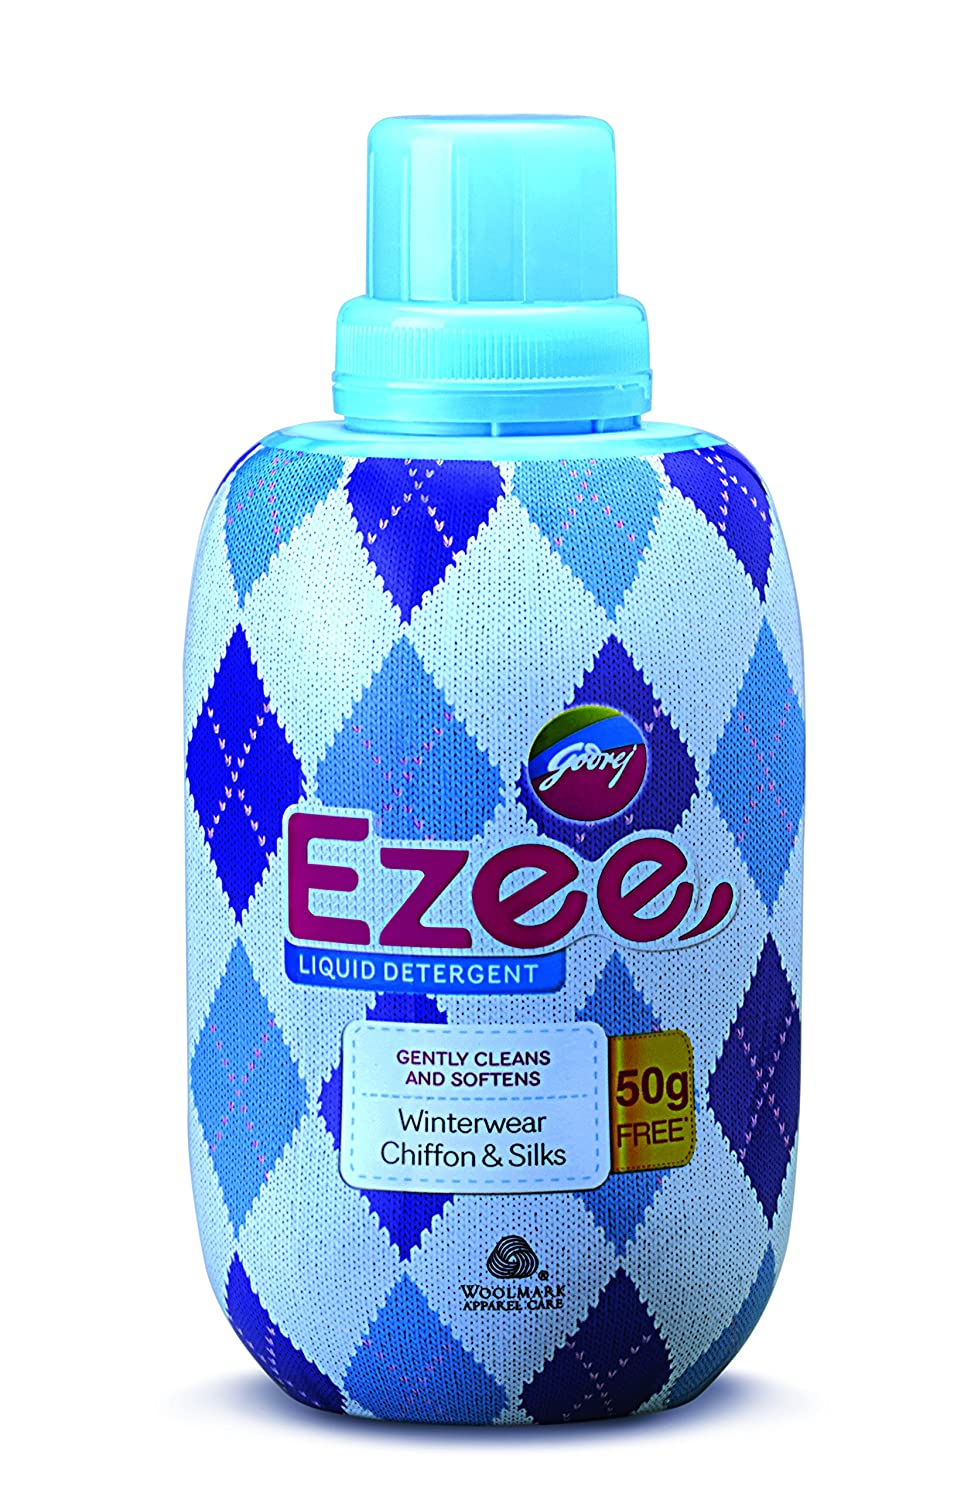 Buy Godrej Ezee Liquid Detergent - 250 g Online at Low Prices in ...